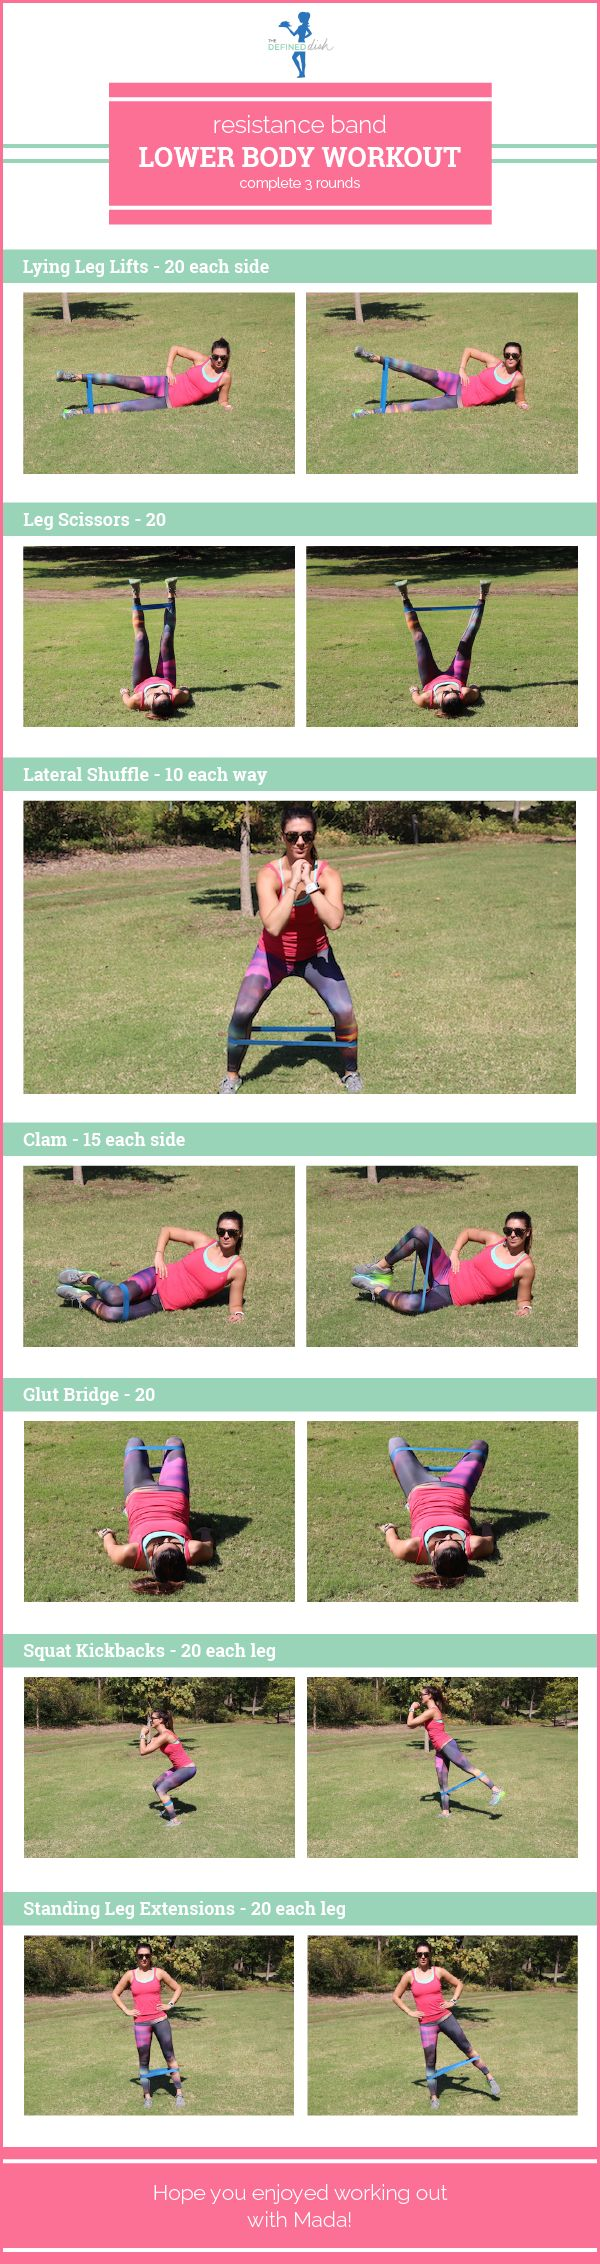 Resistance Band Lower Body Workout | The Defined Dish Sports & Outdoors - Sports & Fitness - Yoga Equipment - Clothing - Women - Pants - yoga fitness - http://amzn.to/2k0et0A